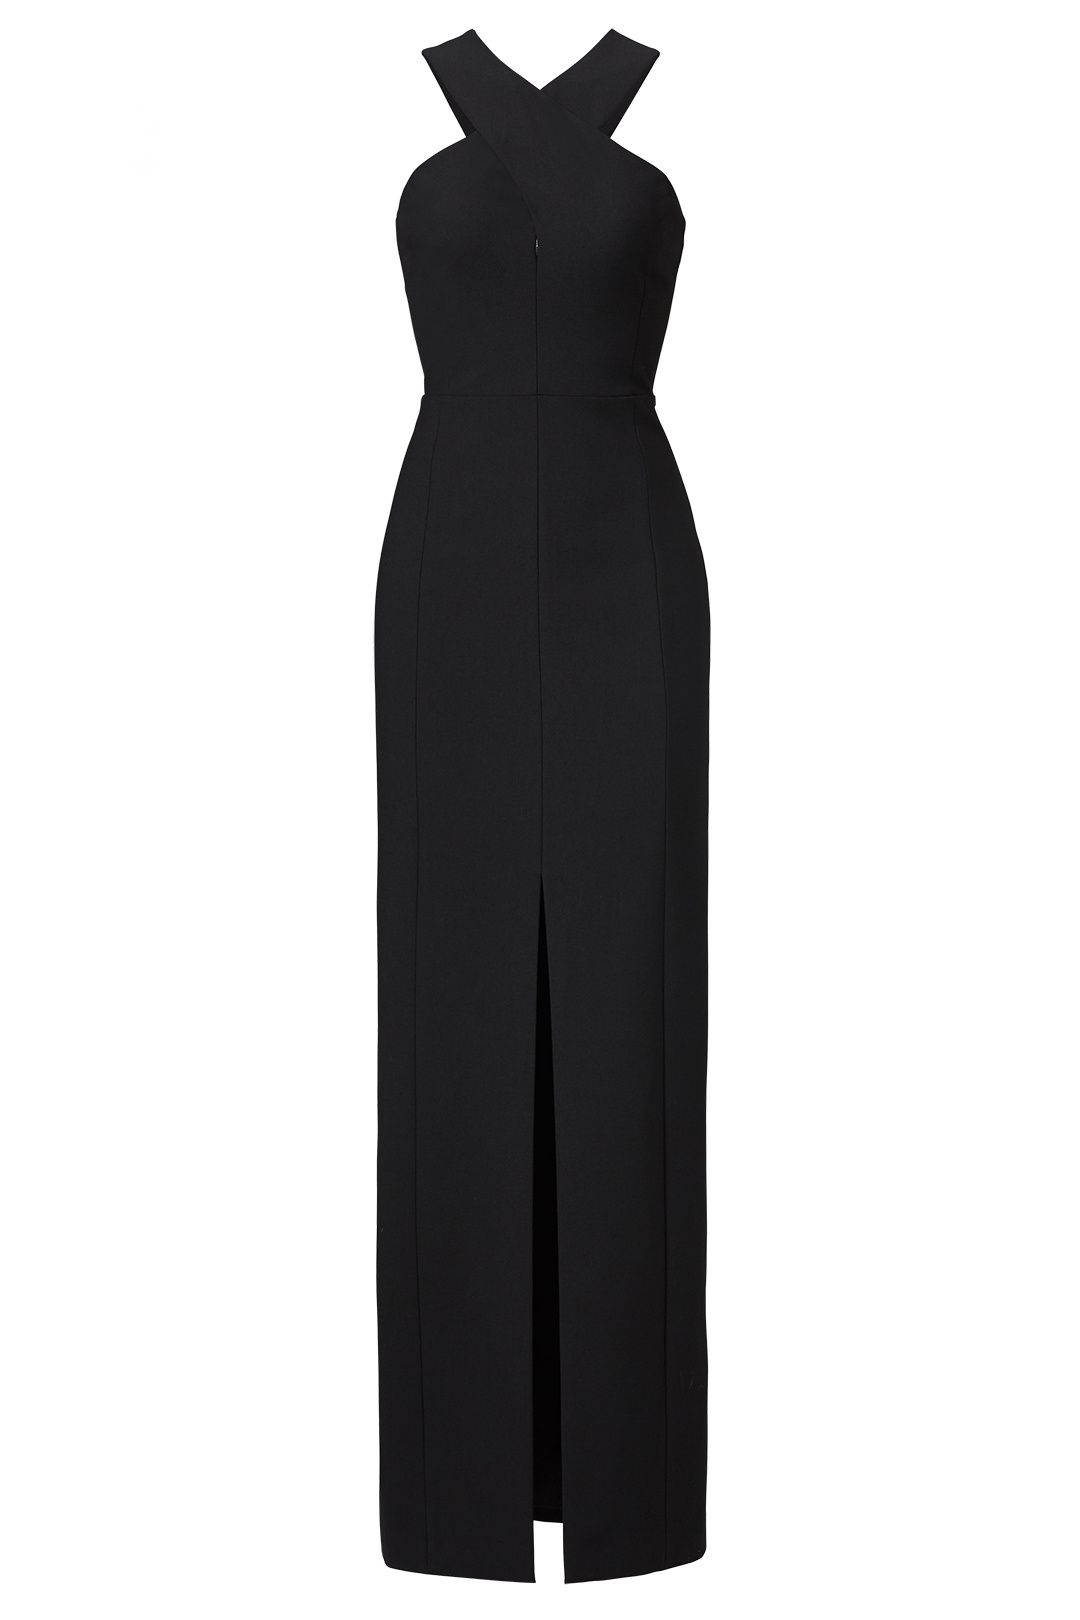 Dress to wear at a wedding  Elizabeth and James Black Mila Gown  Wear  Pinterest  Gowns